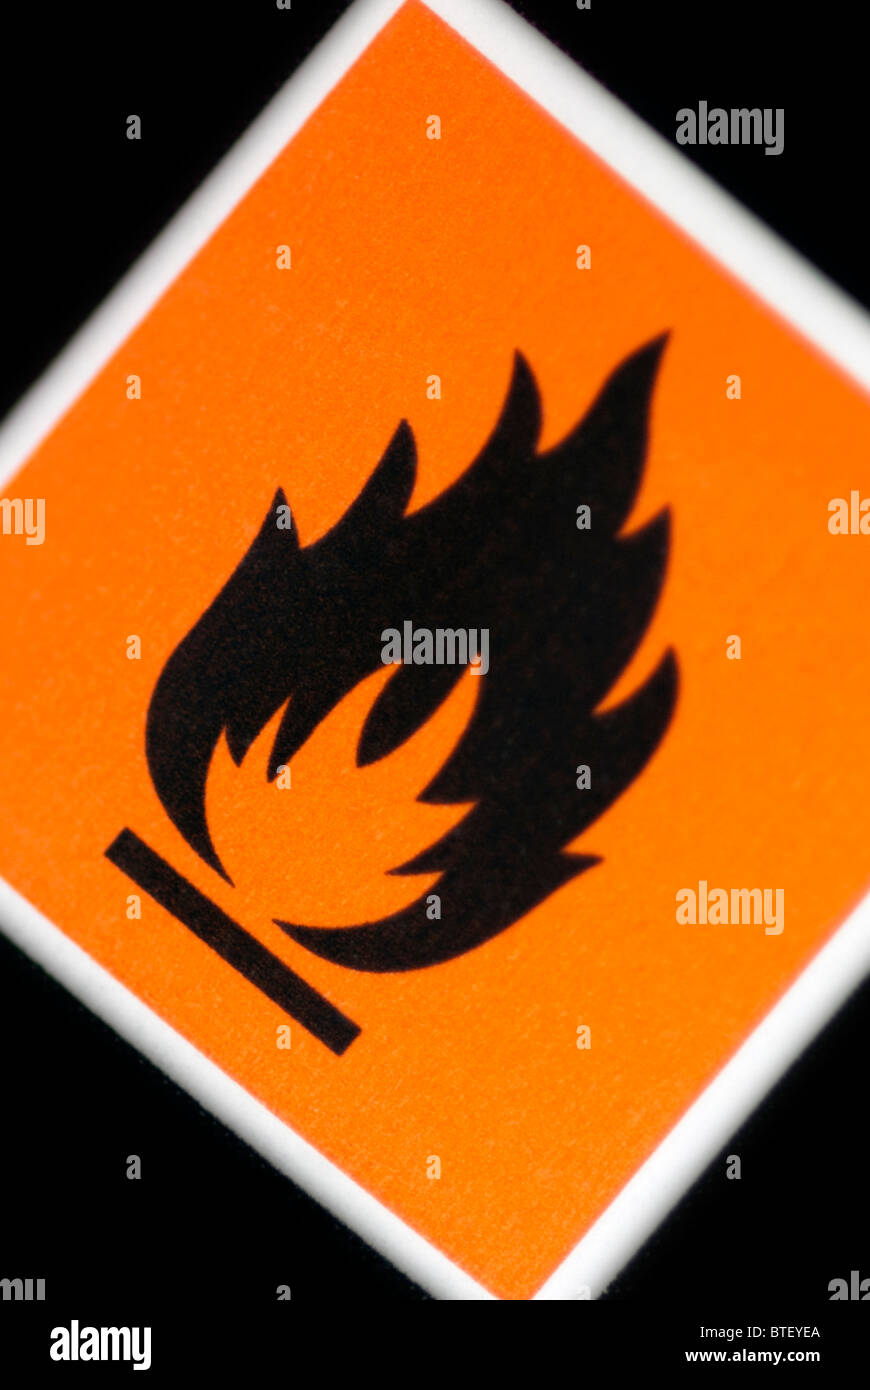 Inflammable Sign - Stock Image